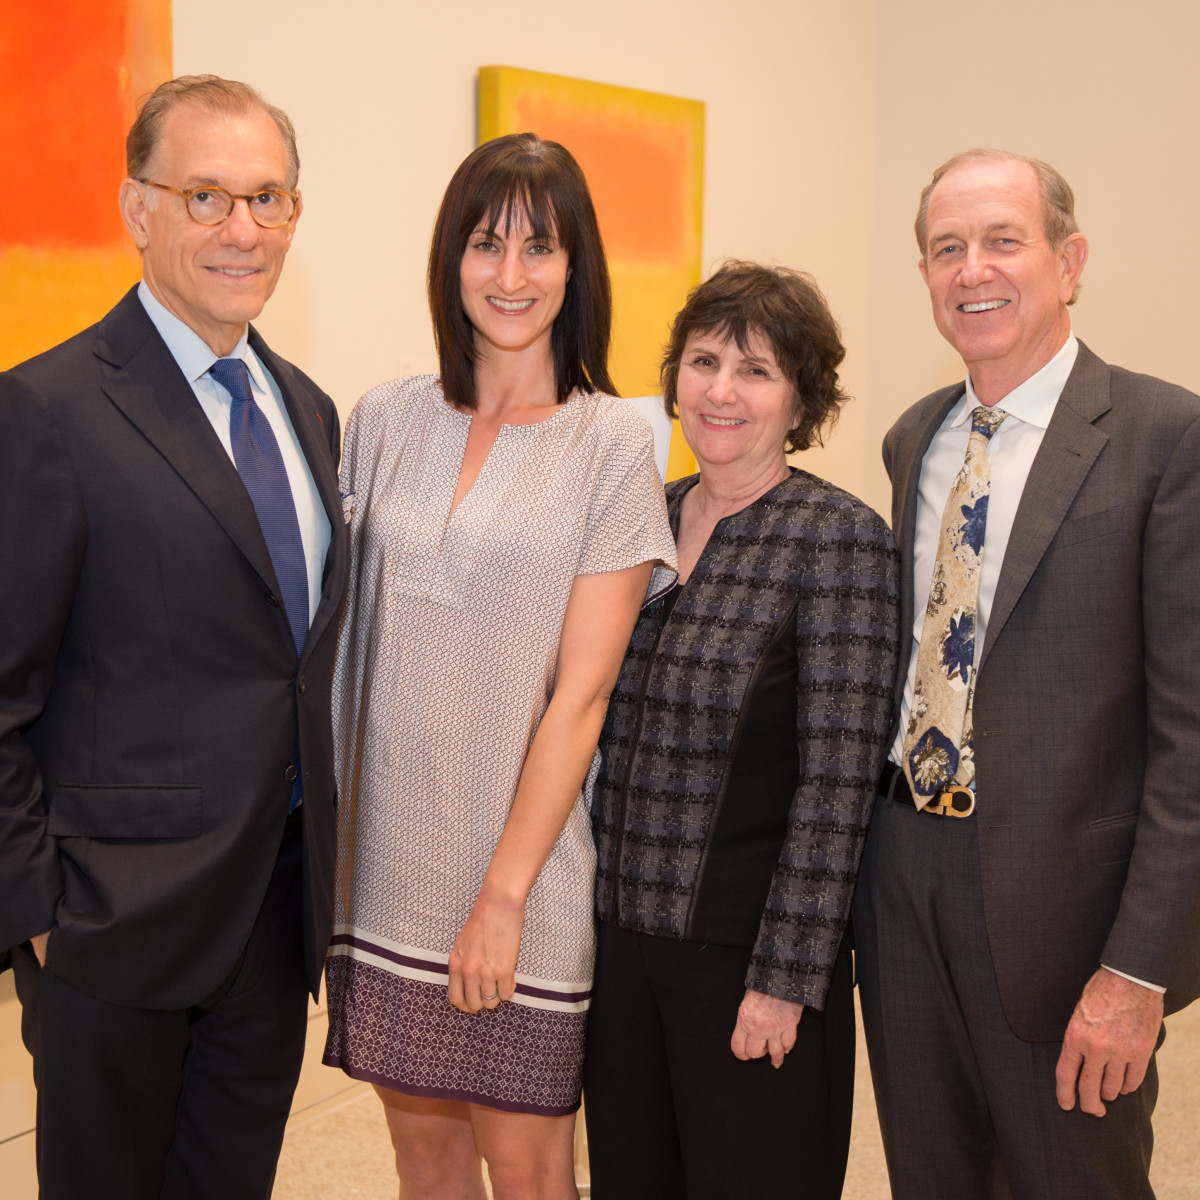 News, Shelby, MFAH Rothko opening, Sept. 2015 Gary Tinterow, Emily Church, Leslie Bucher Brad Bucher